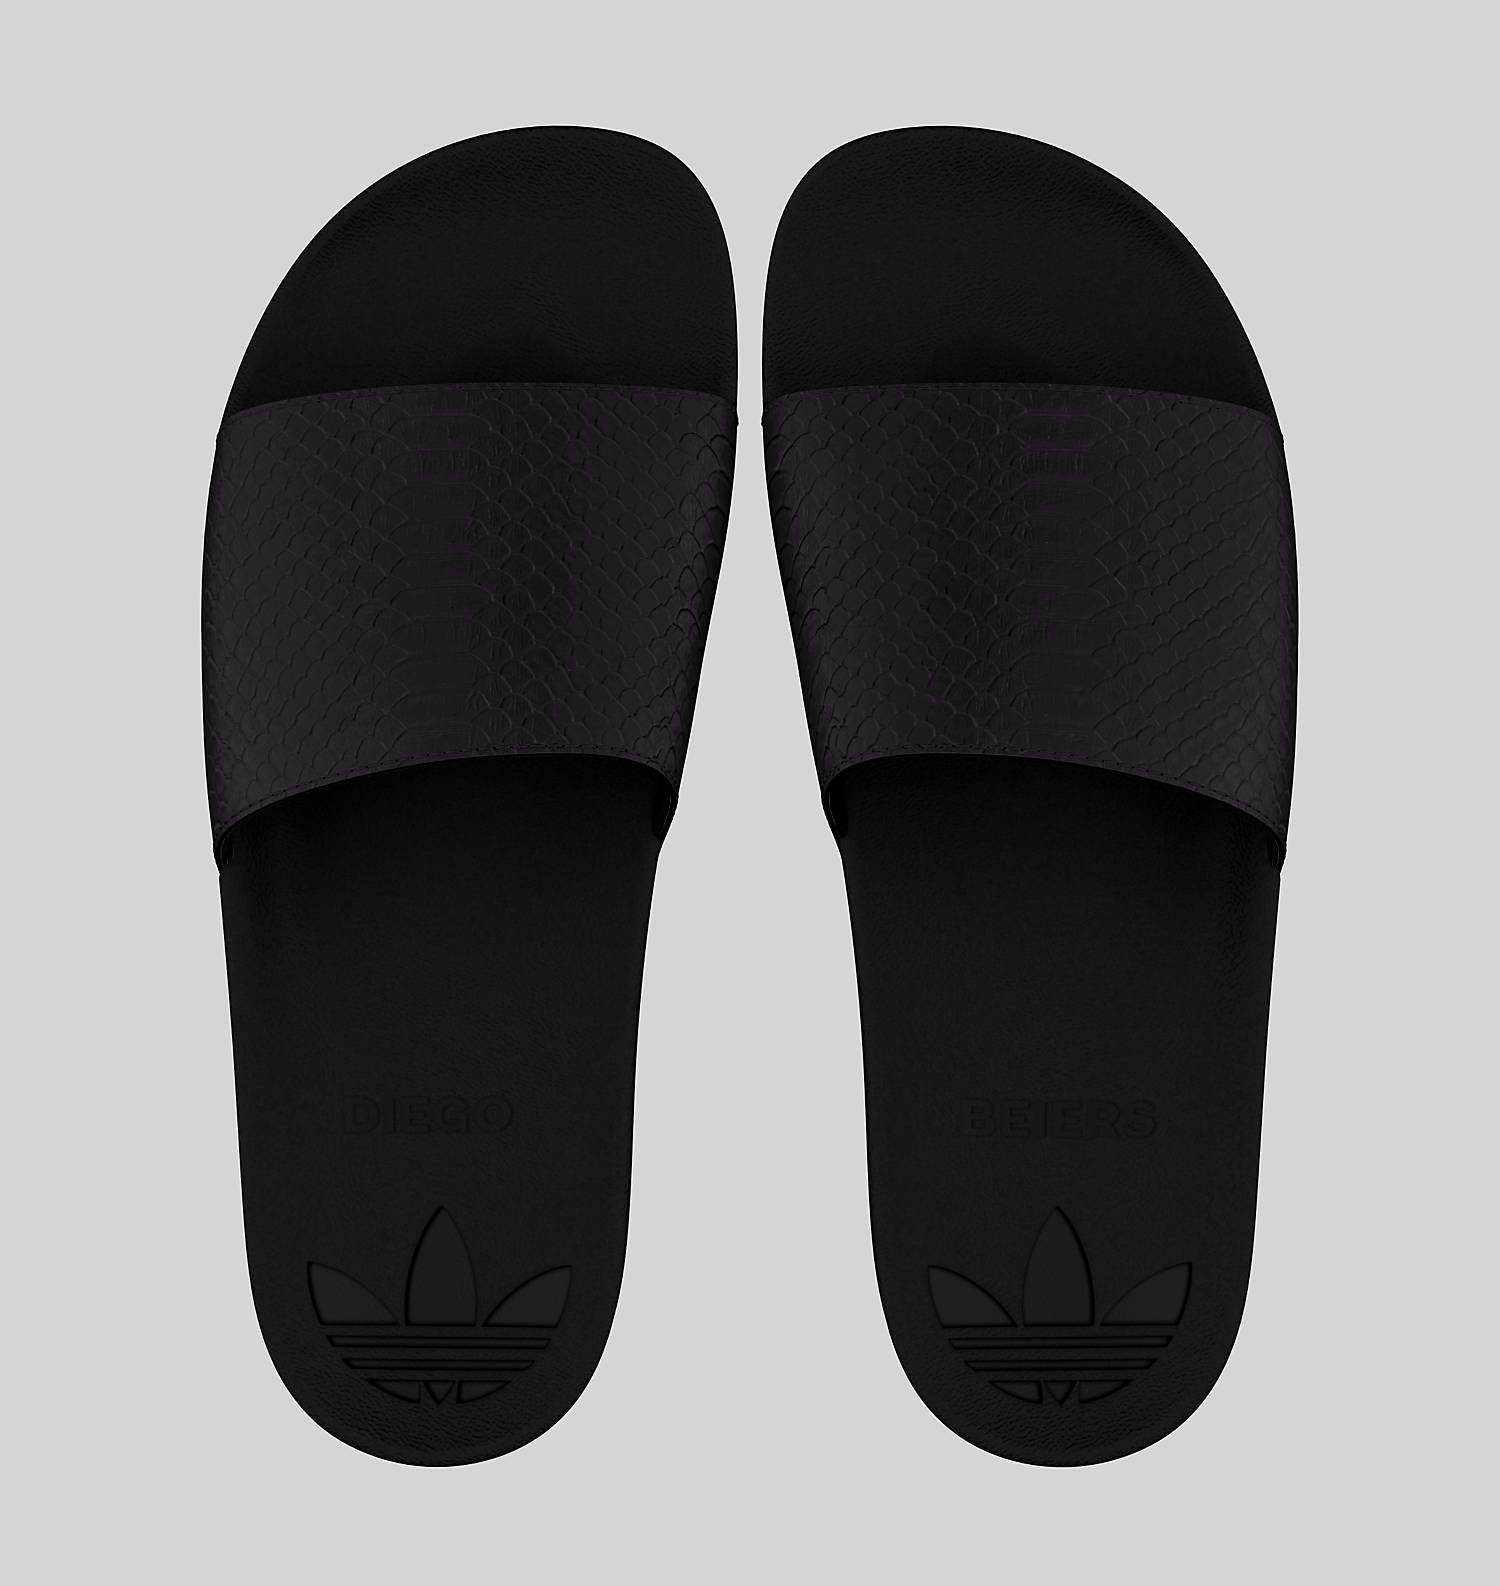 Adidas Adilette all black croc embossed custom slides  6c9612682